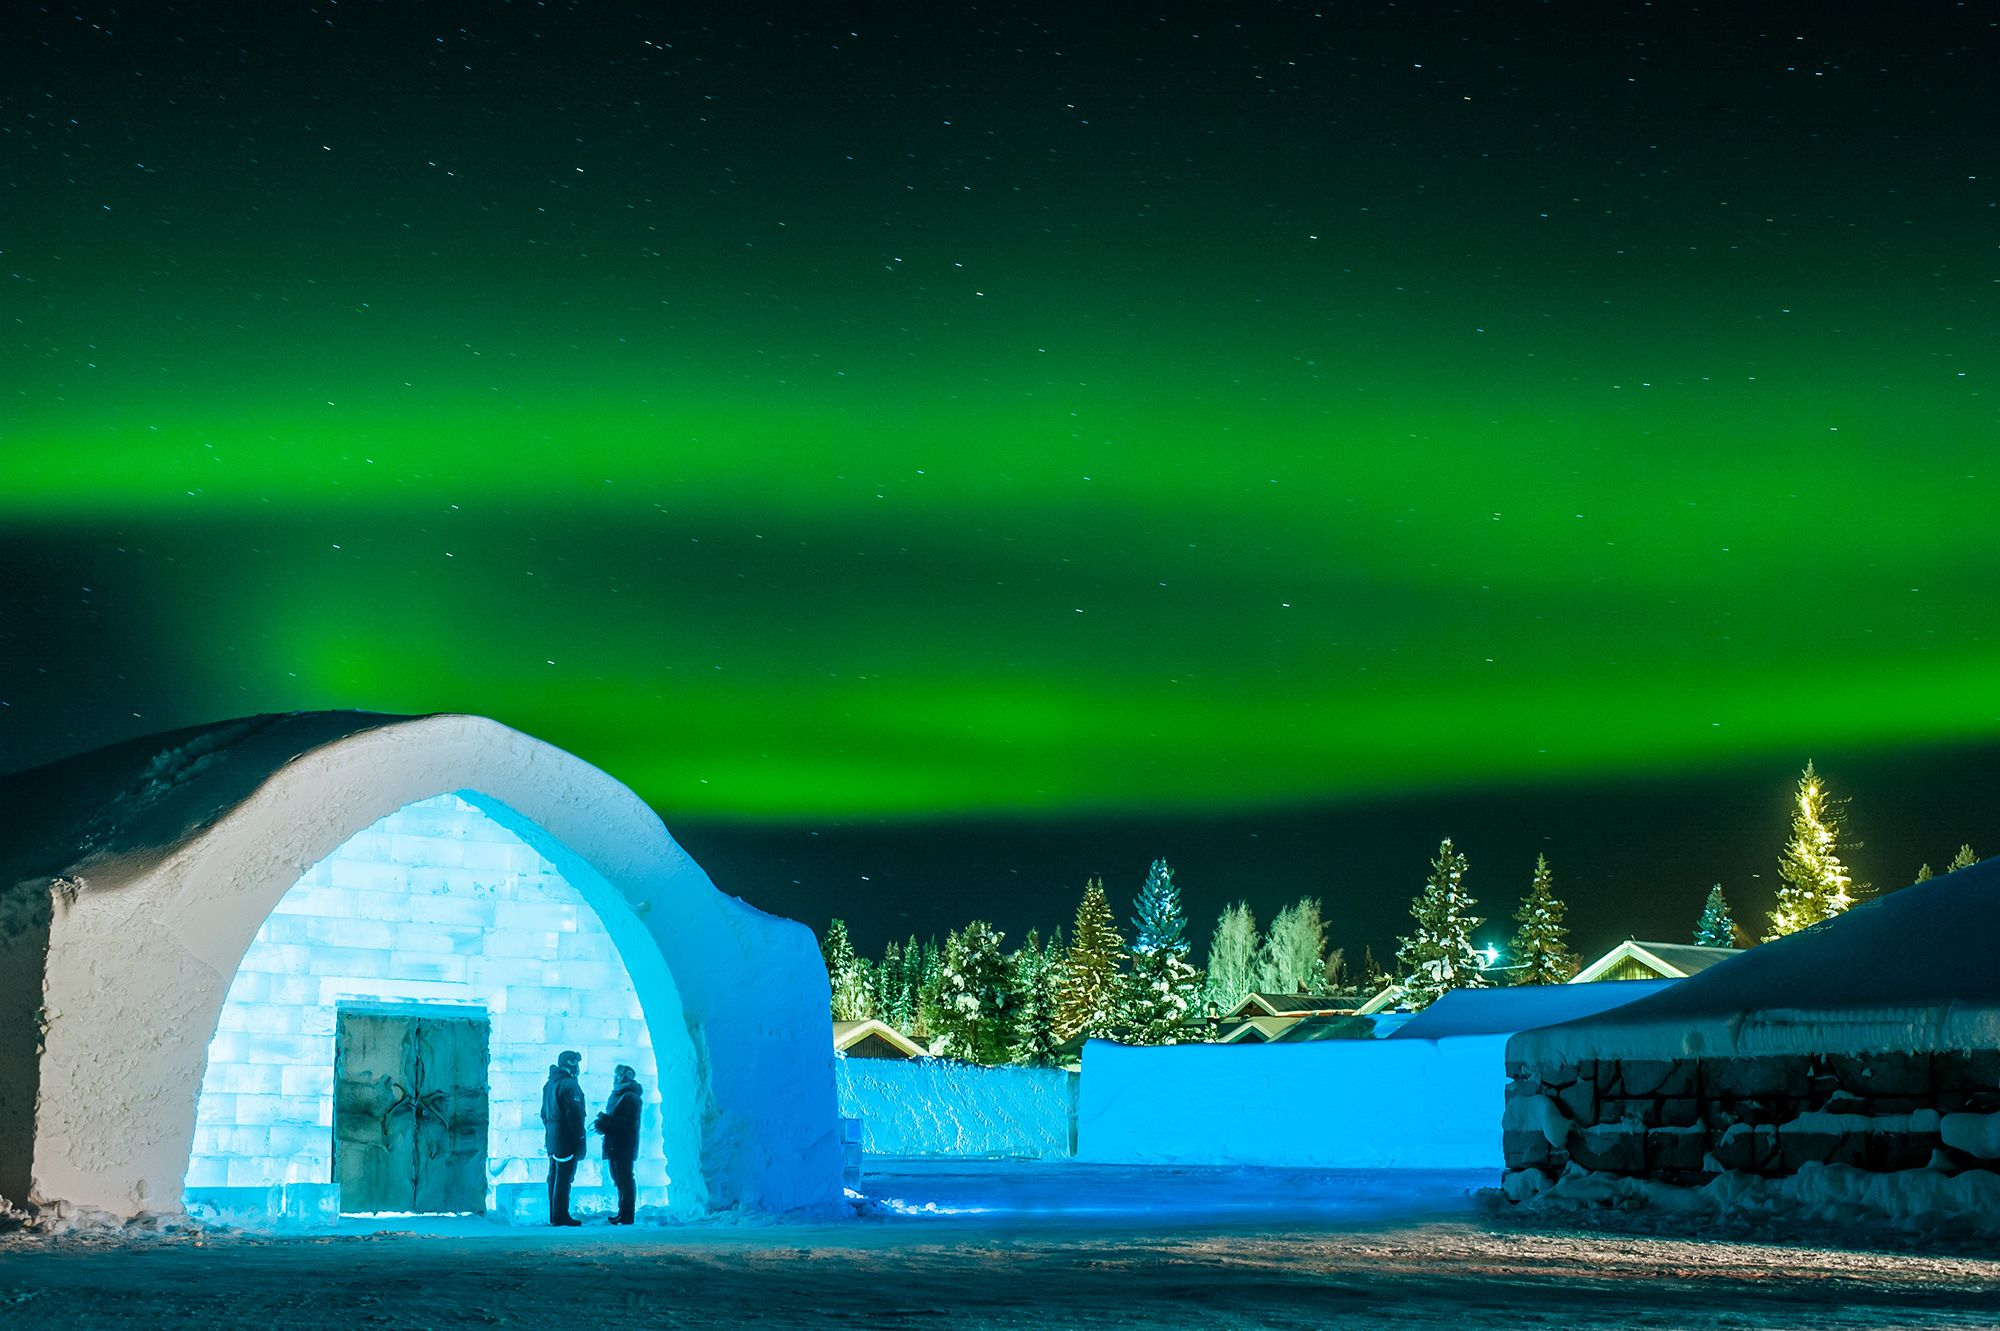 15 incredible photos that will make you want to sleep in an ice hotel